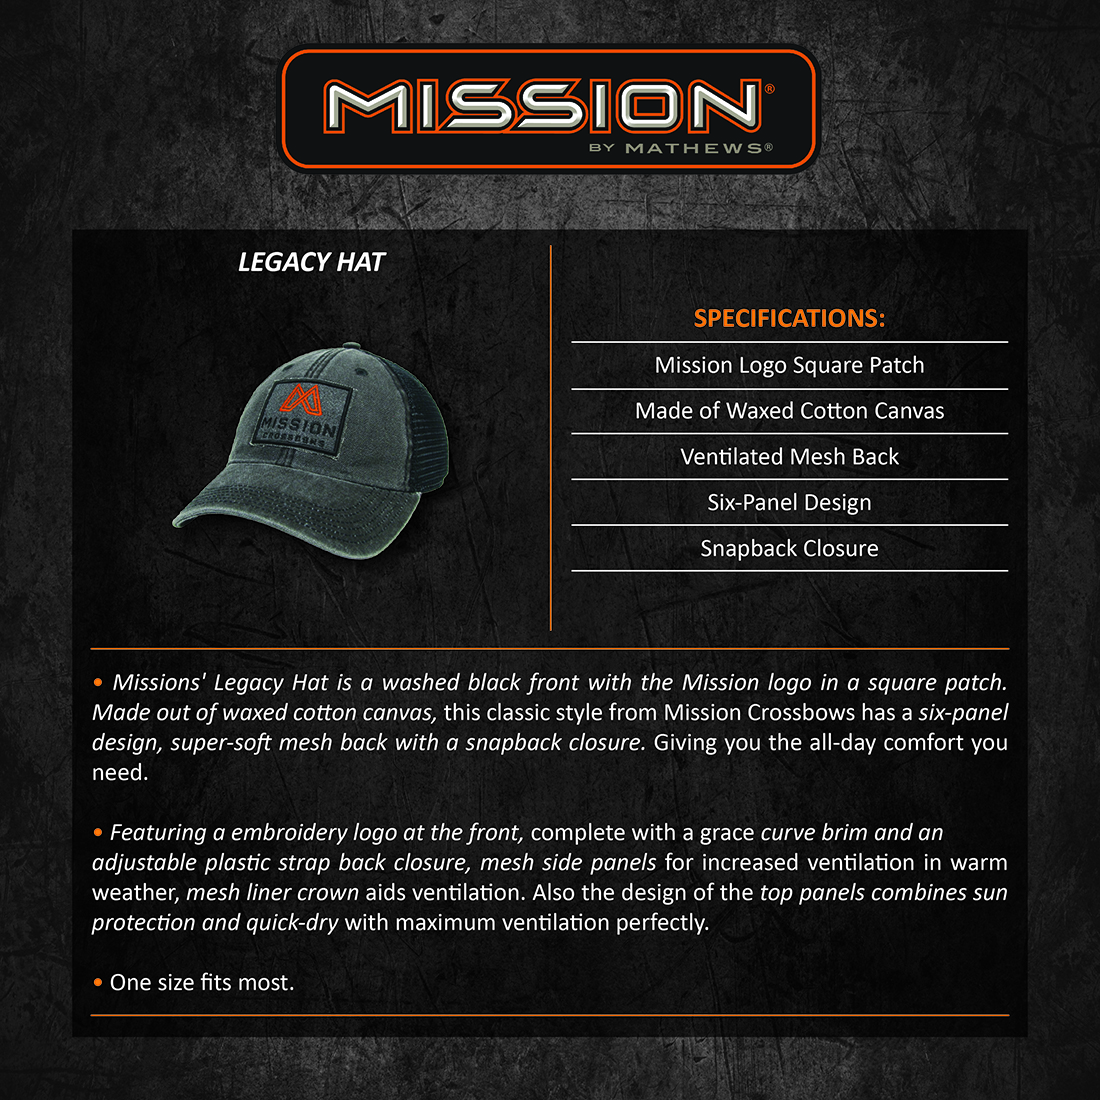 Mission_Legacy_Hat_Product_Description